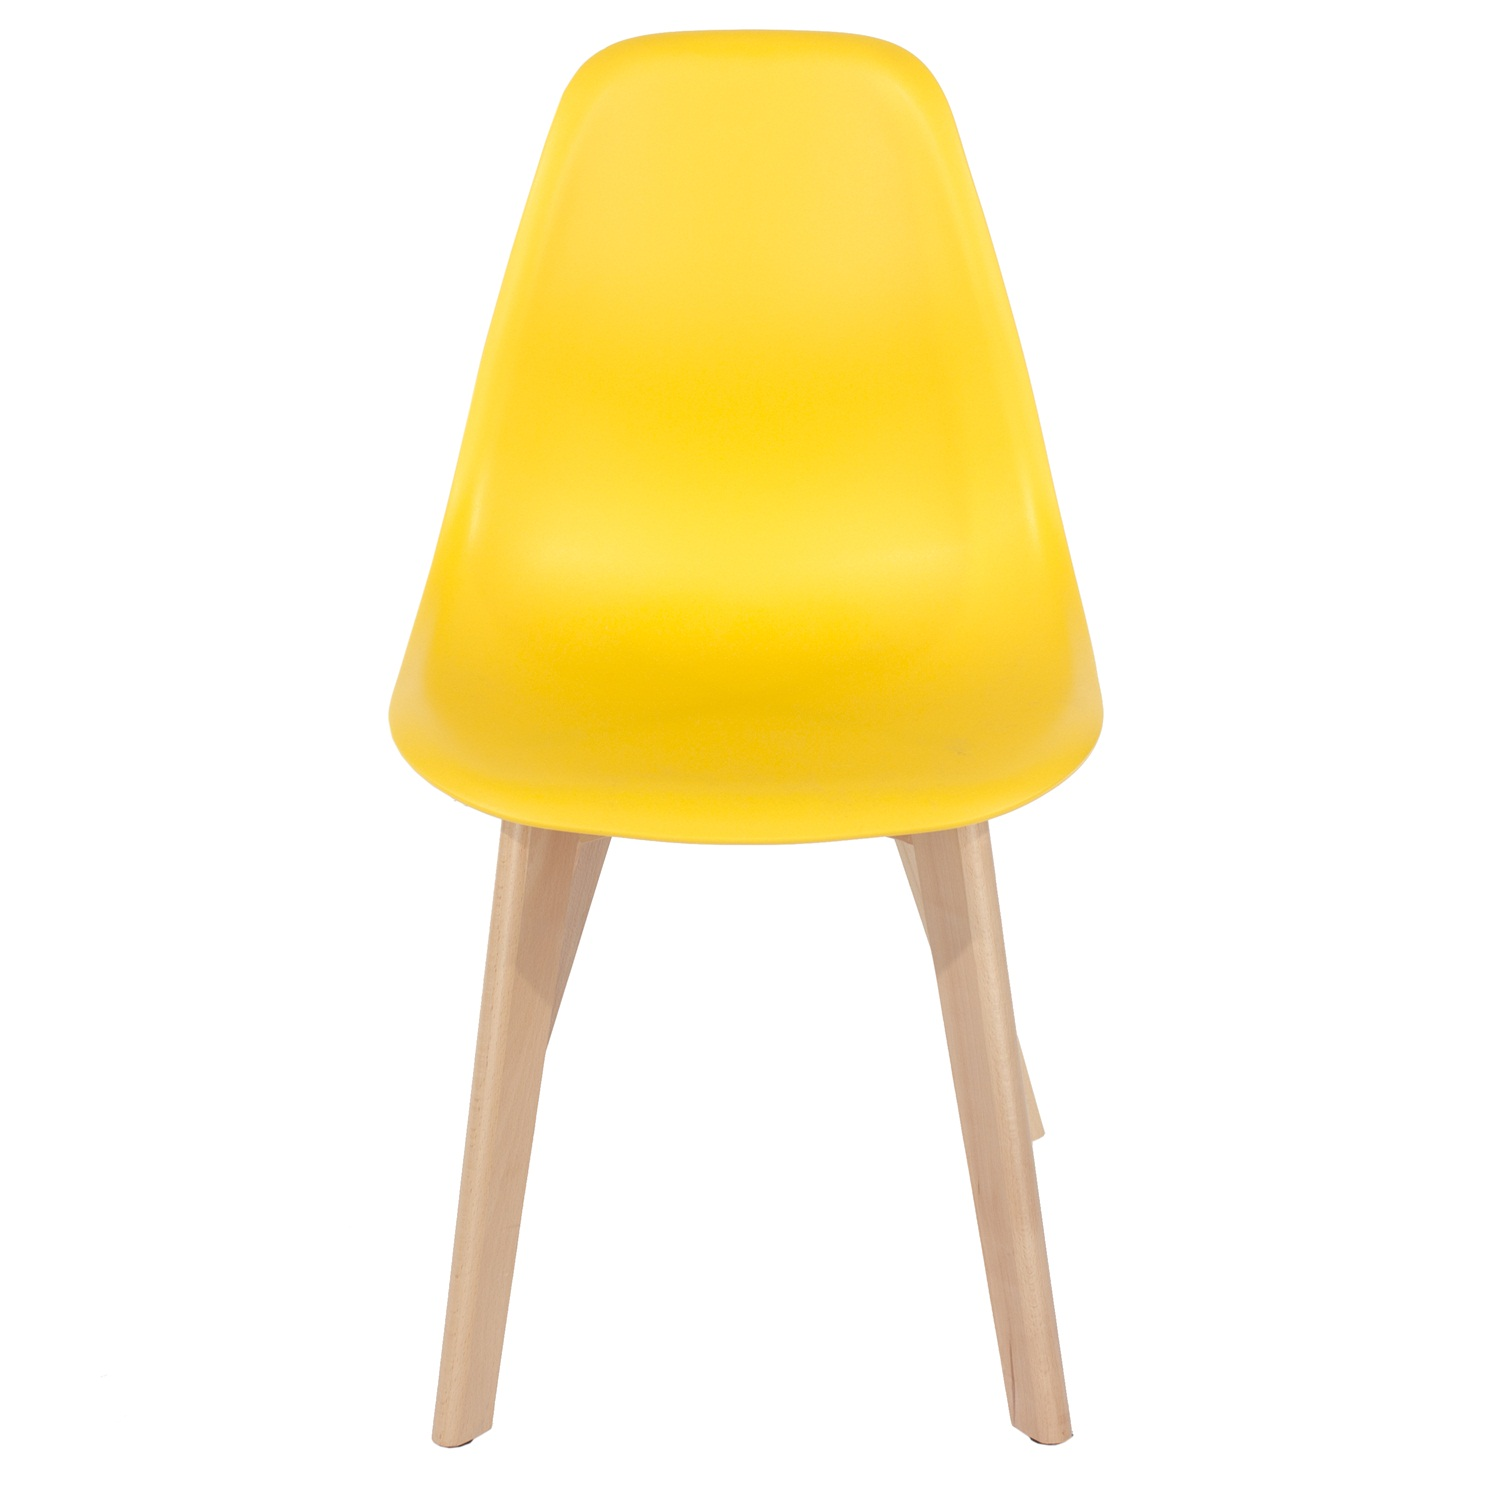 yellow plastic chair, wood legs (order in pairs)